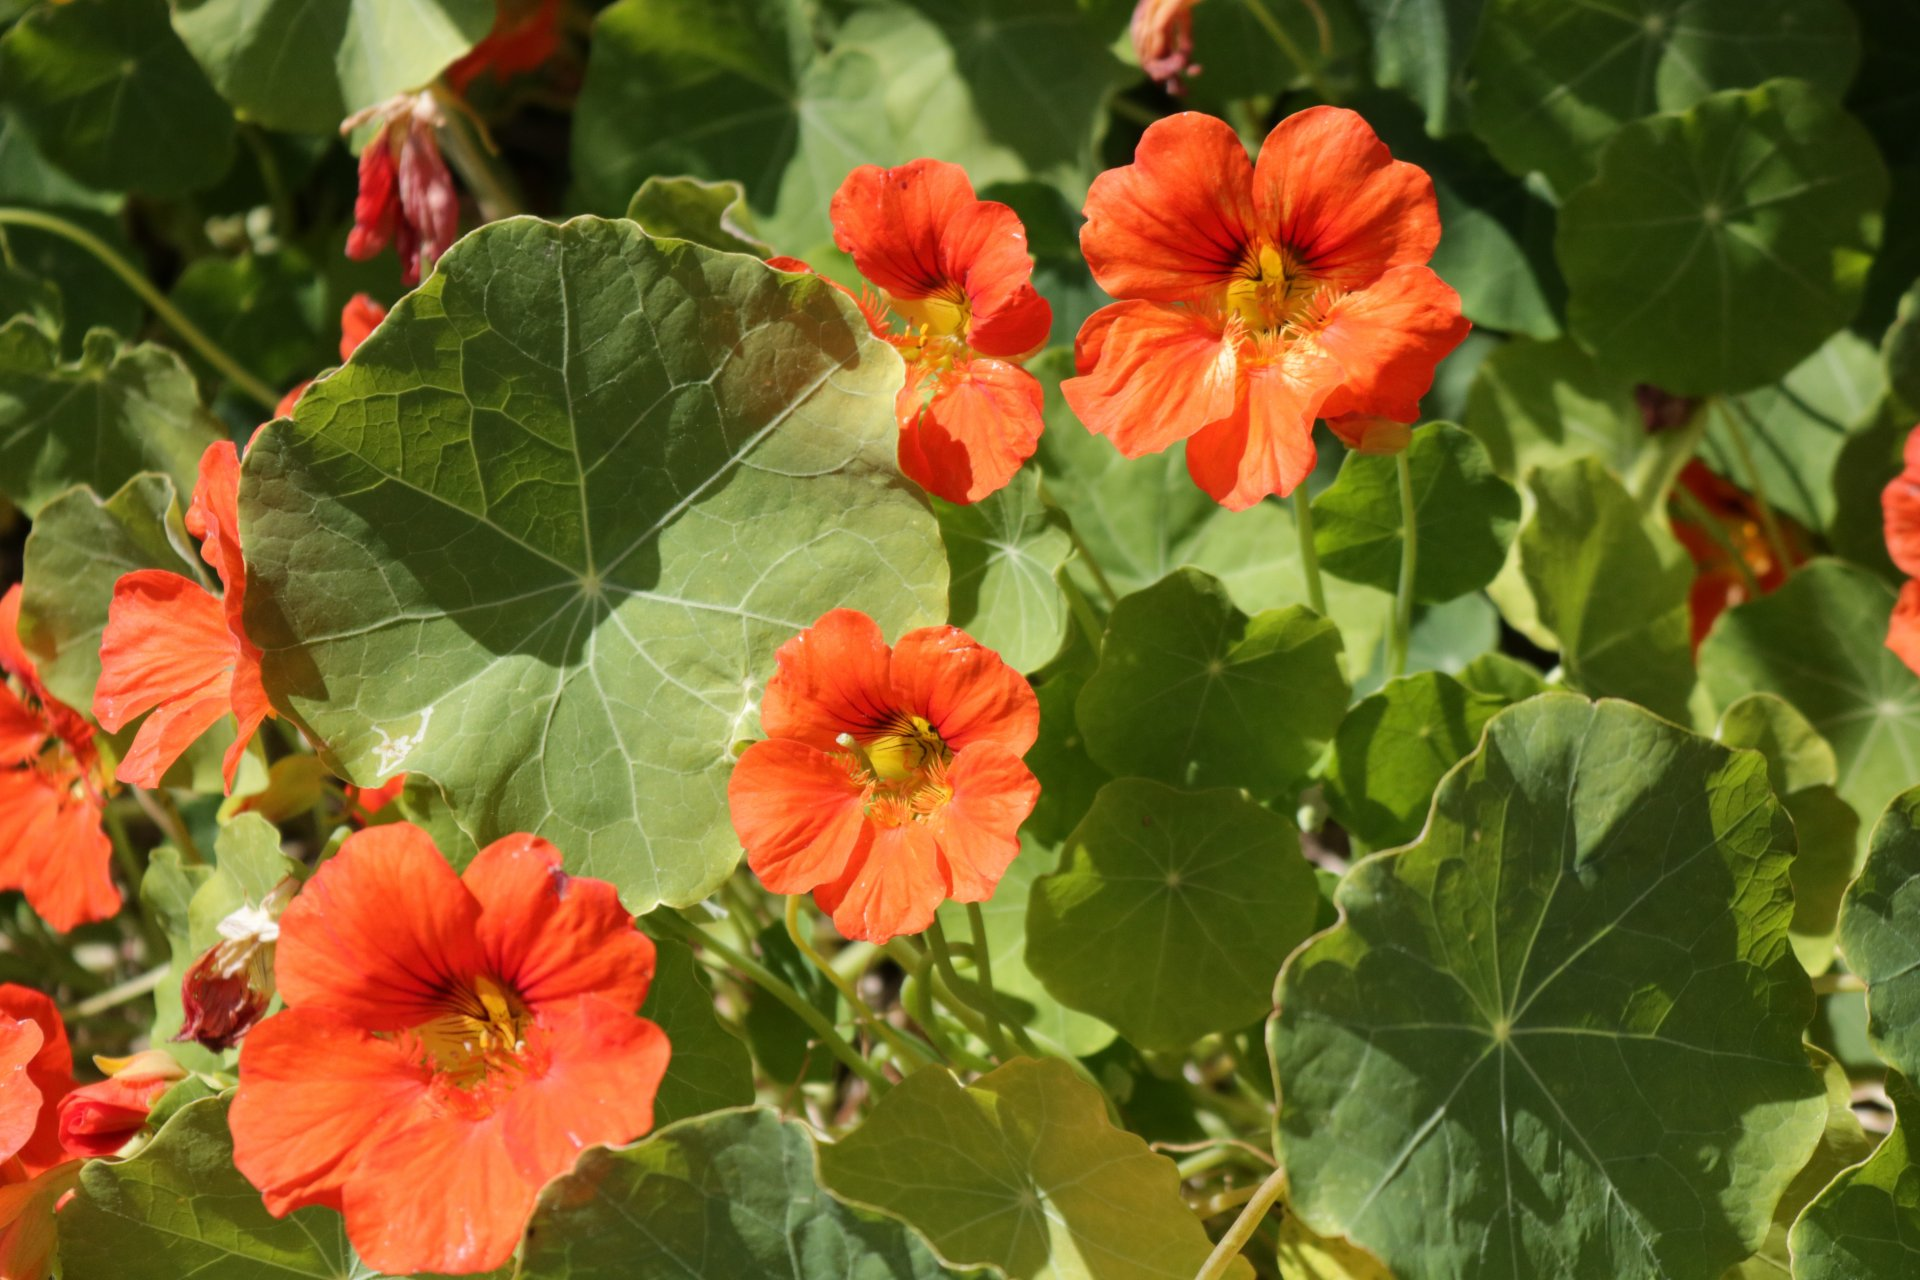 Yellow and orange nasturtium flowers fight for sunlight in a densely packed patch of their garden, circular leaves in a garden bed on April 14. | Photo by Chelsea Wood